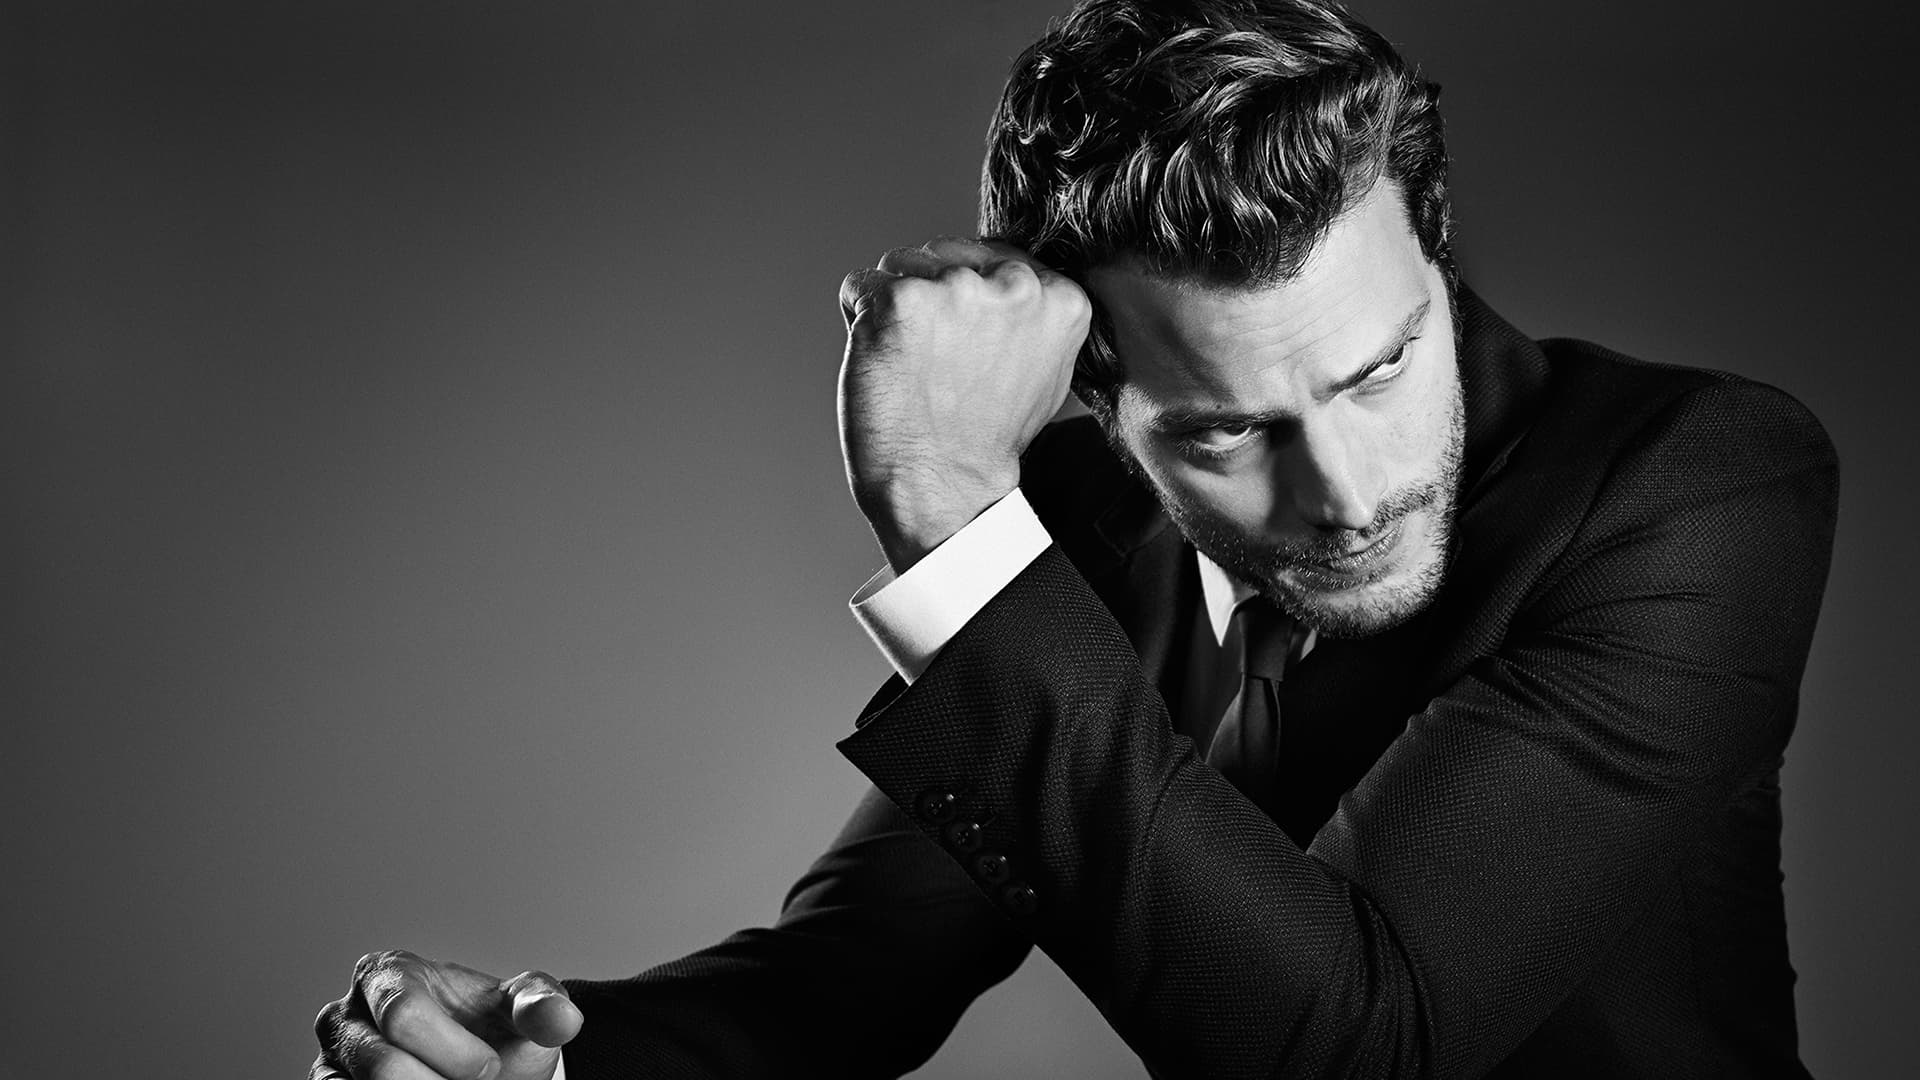 monochrome jamie dornan wallpaper 57427